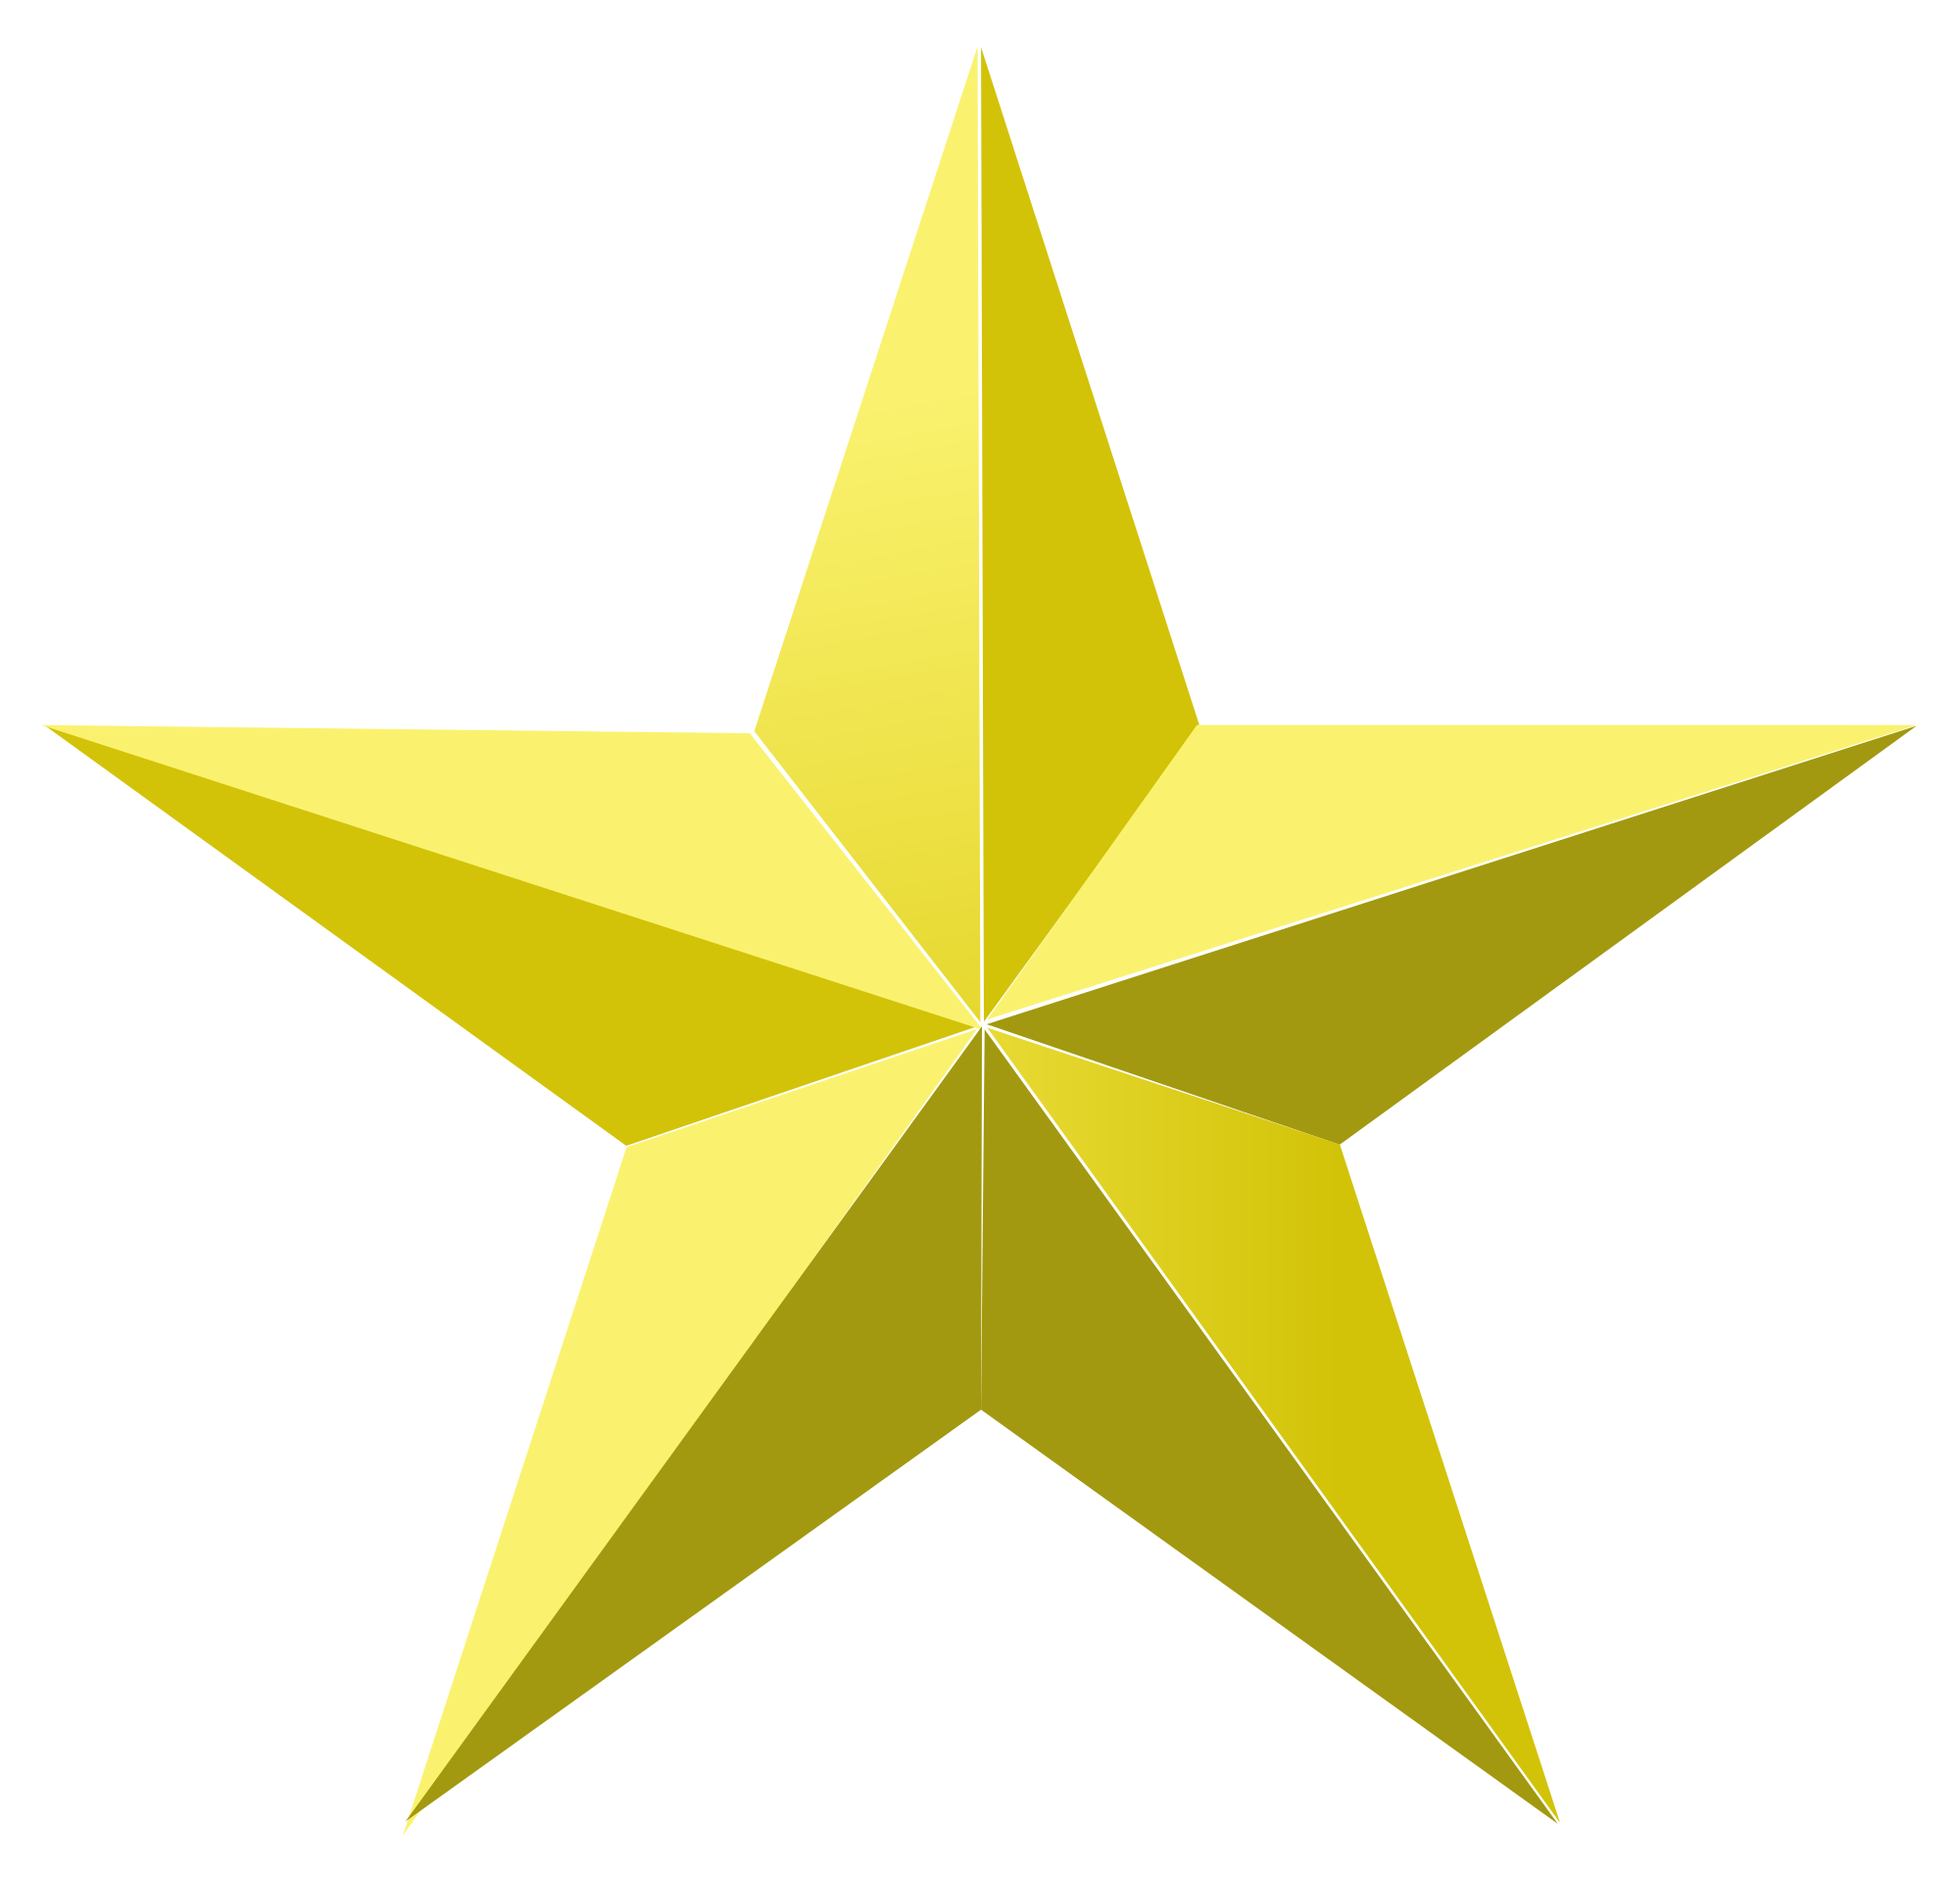 Clipart stars pdf. Star png image free